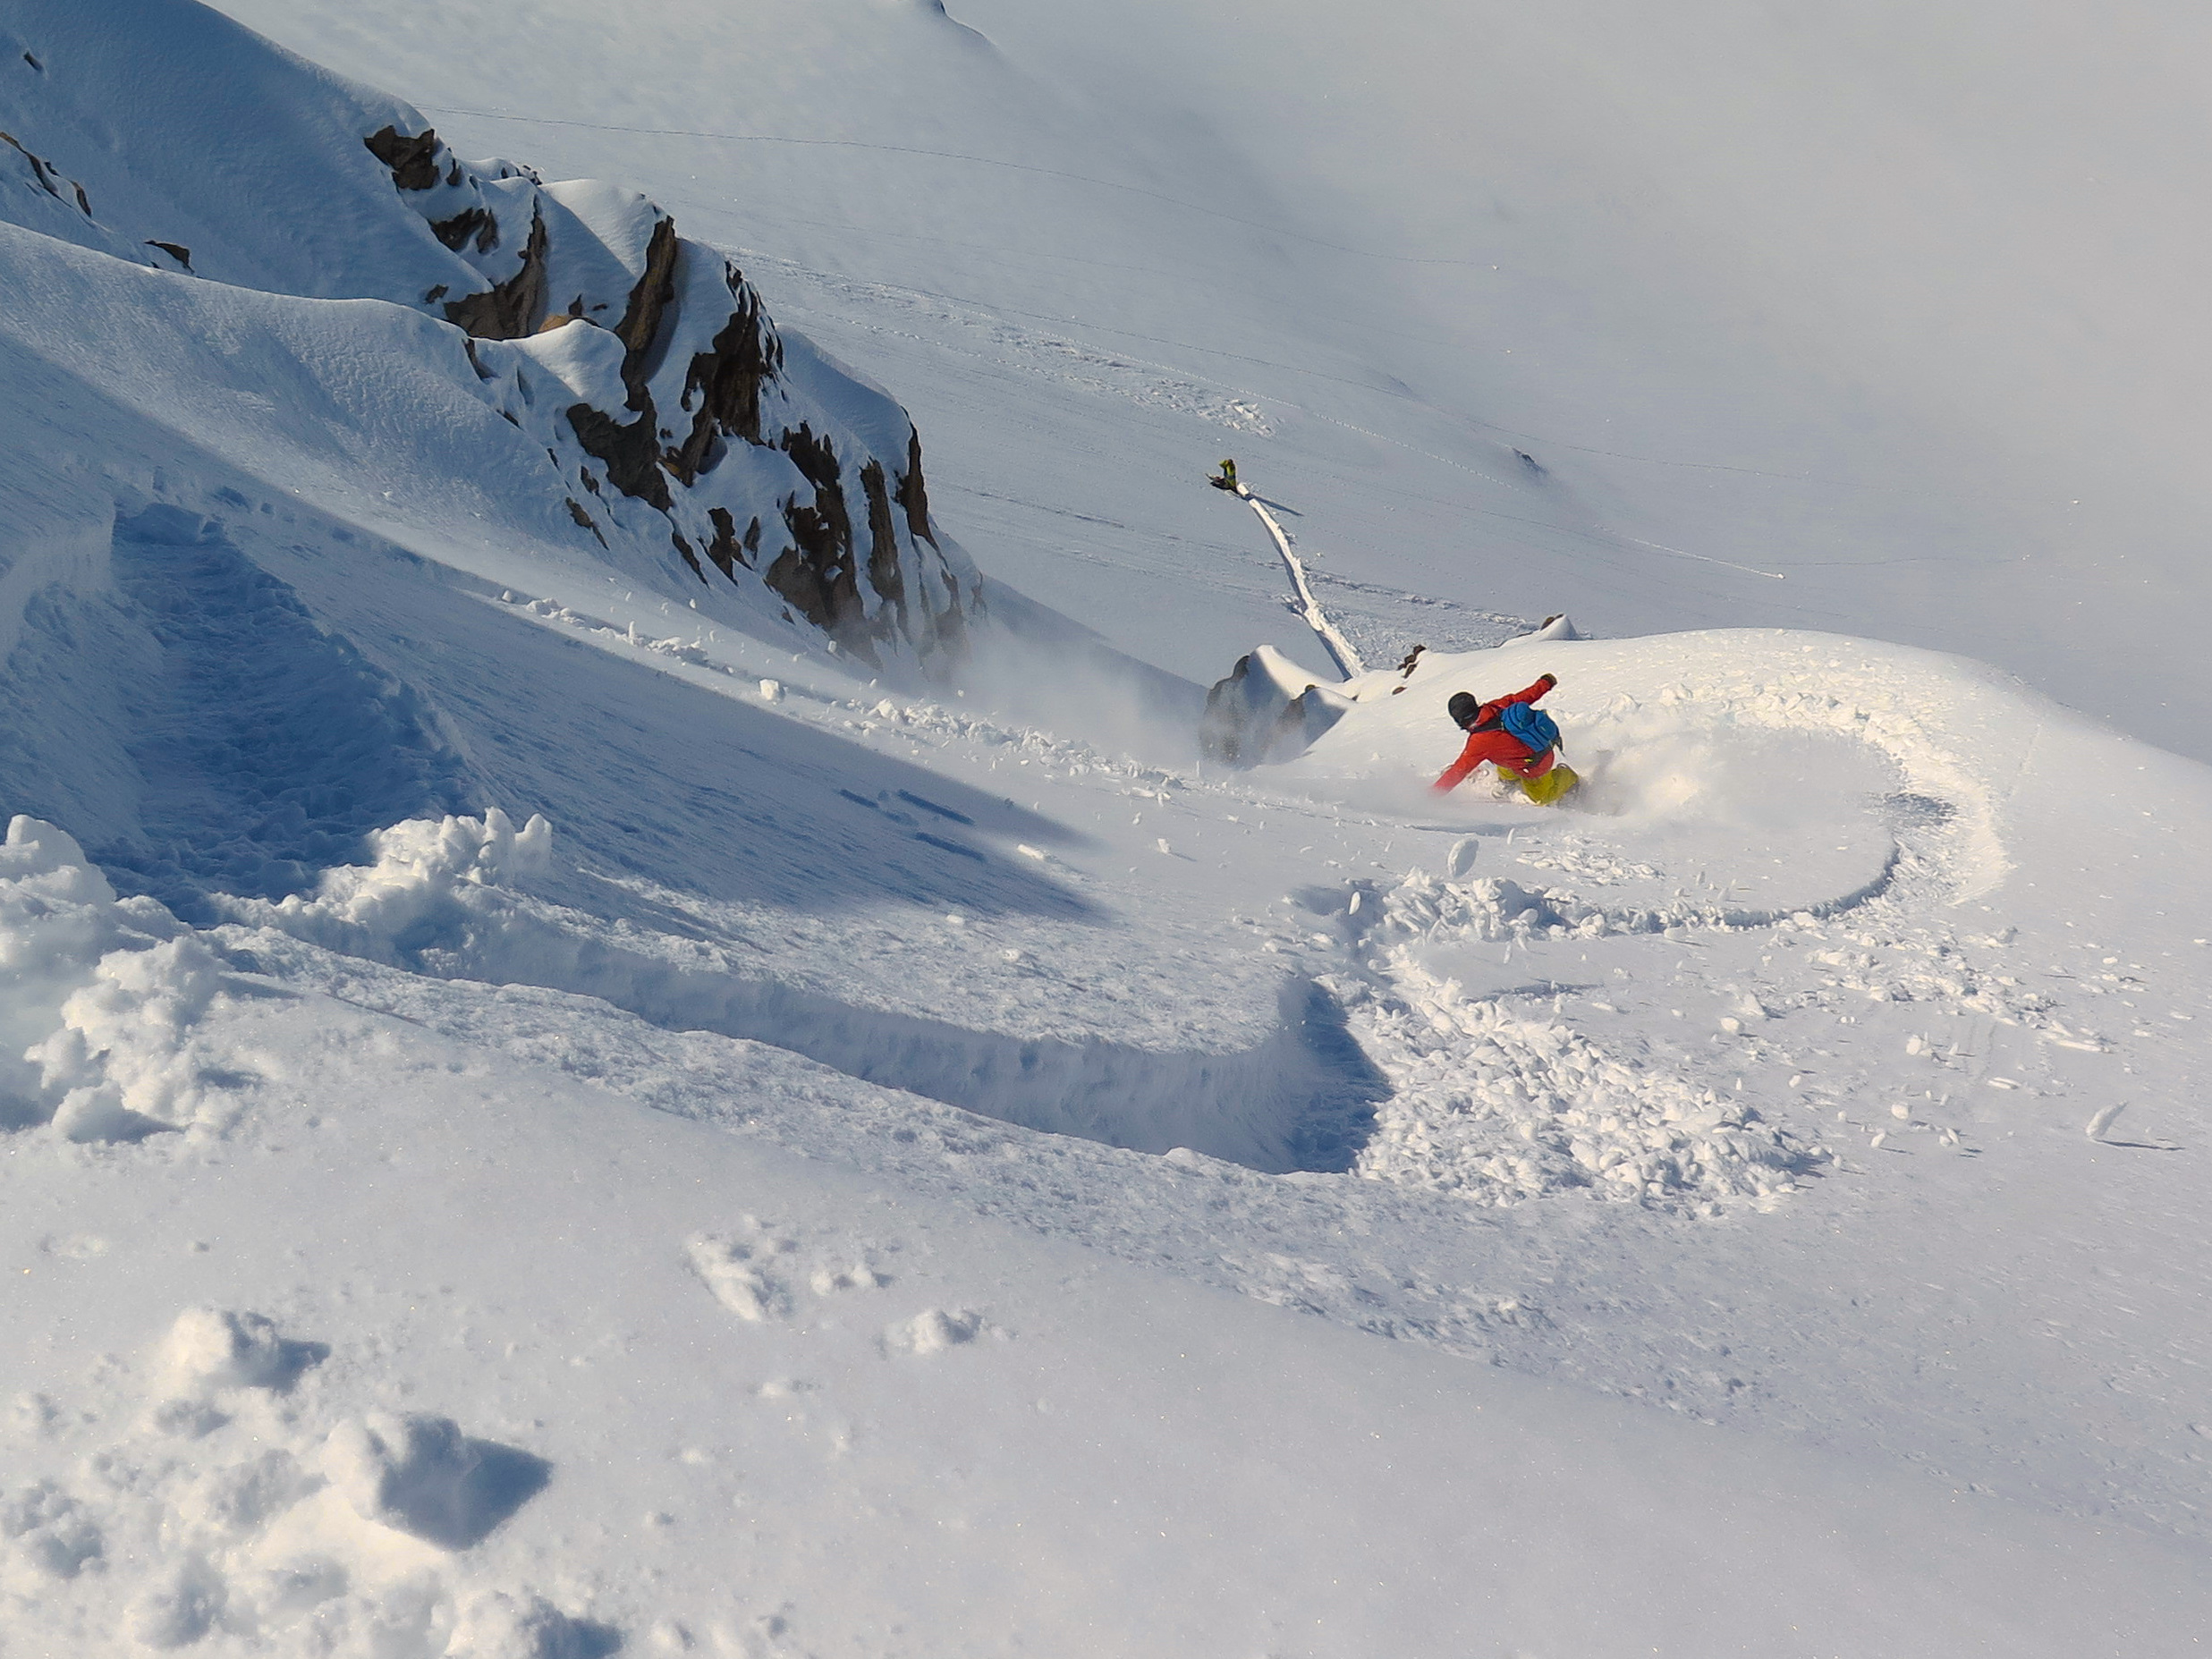 Slaying Southern Hemi Powder - Valle Nevada Backcountry